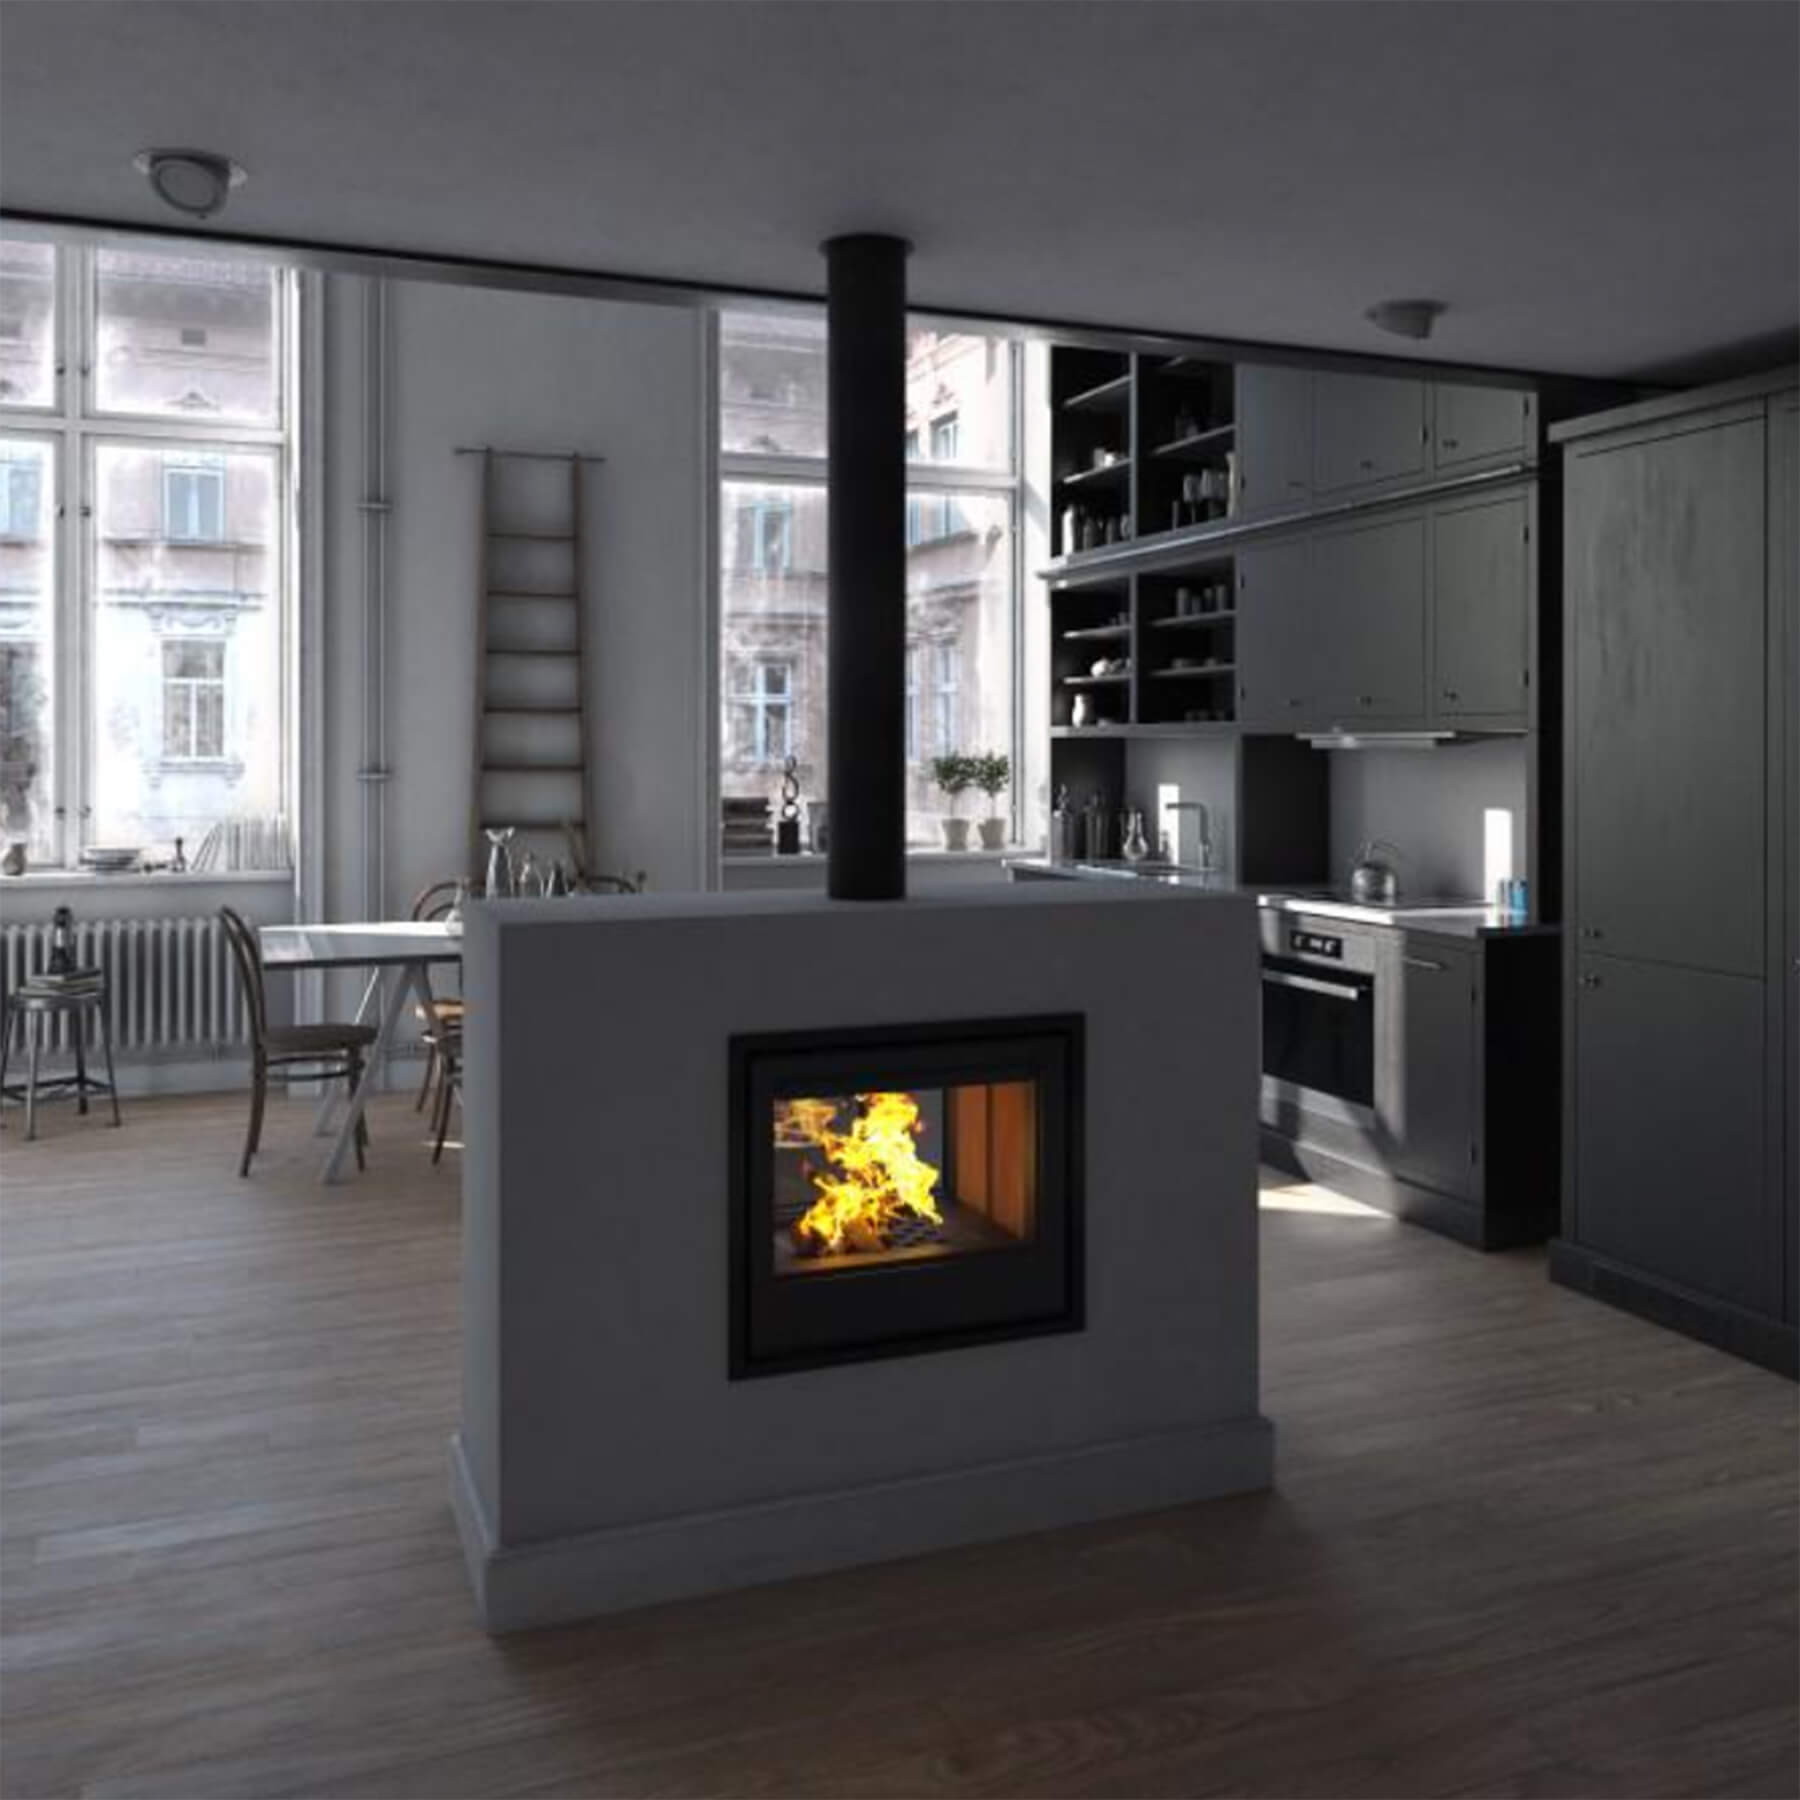 Combustion-Fireplaces-Built-In-Van-Gogh-Double-Sided